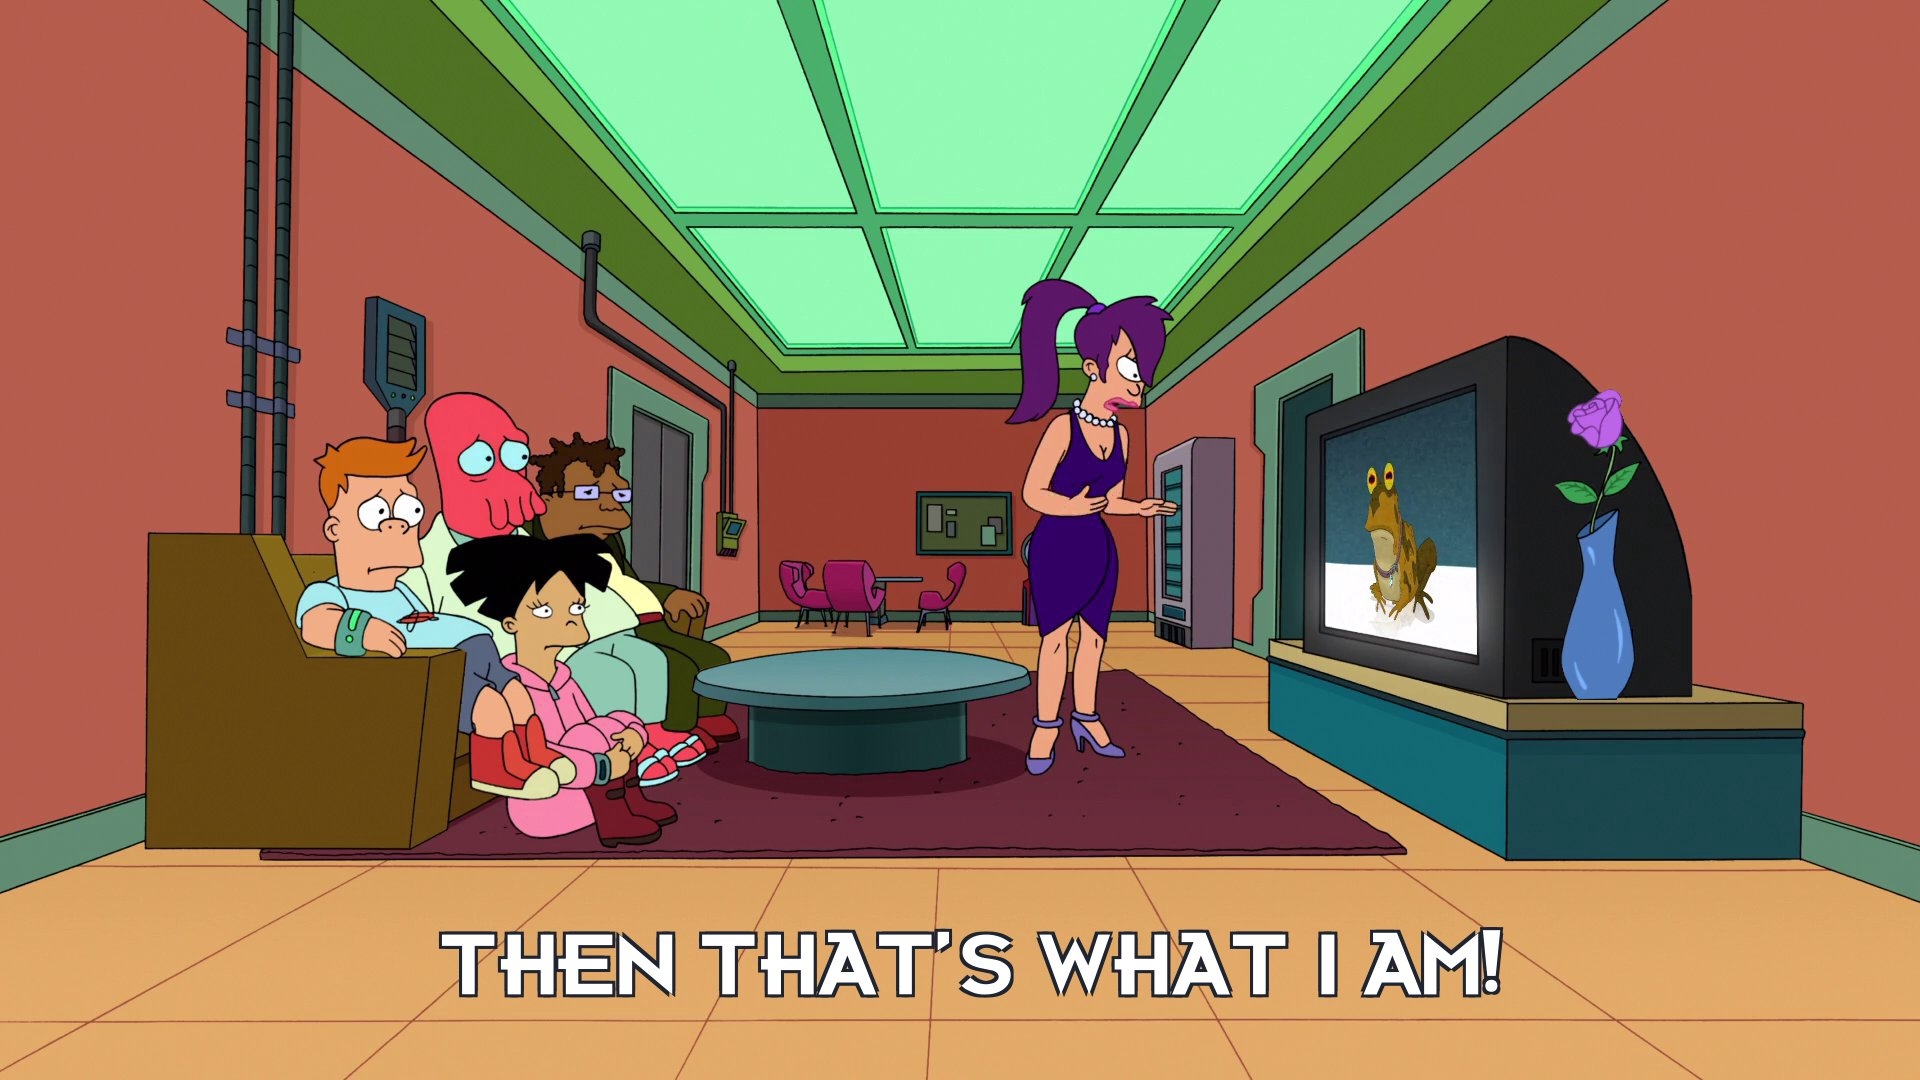 Turanga Leela: Then that's what I am!